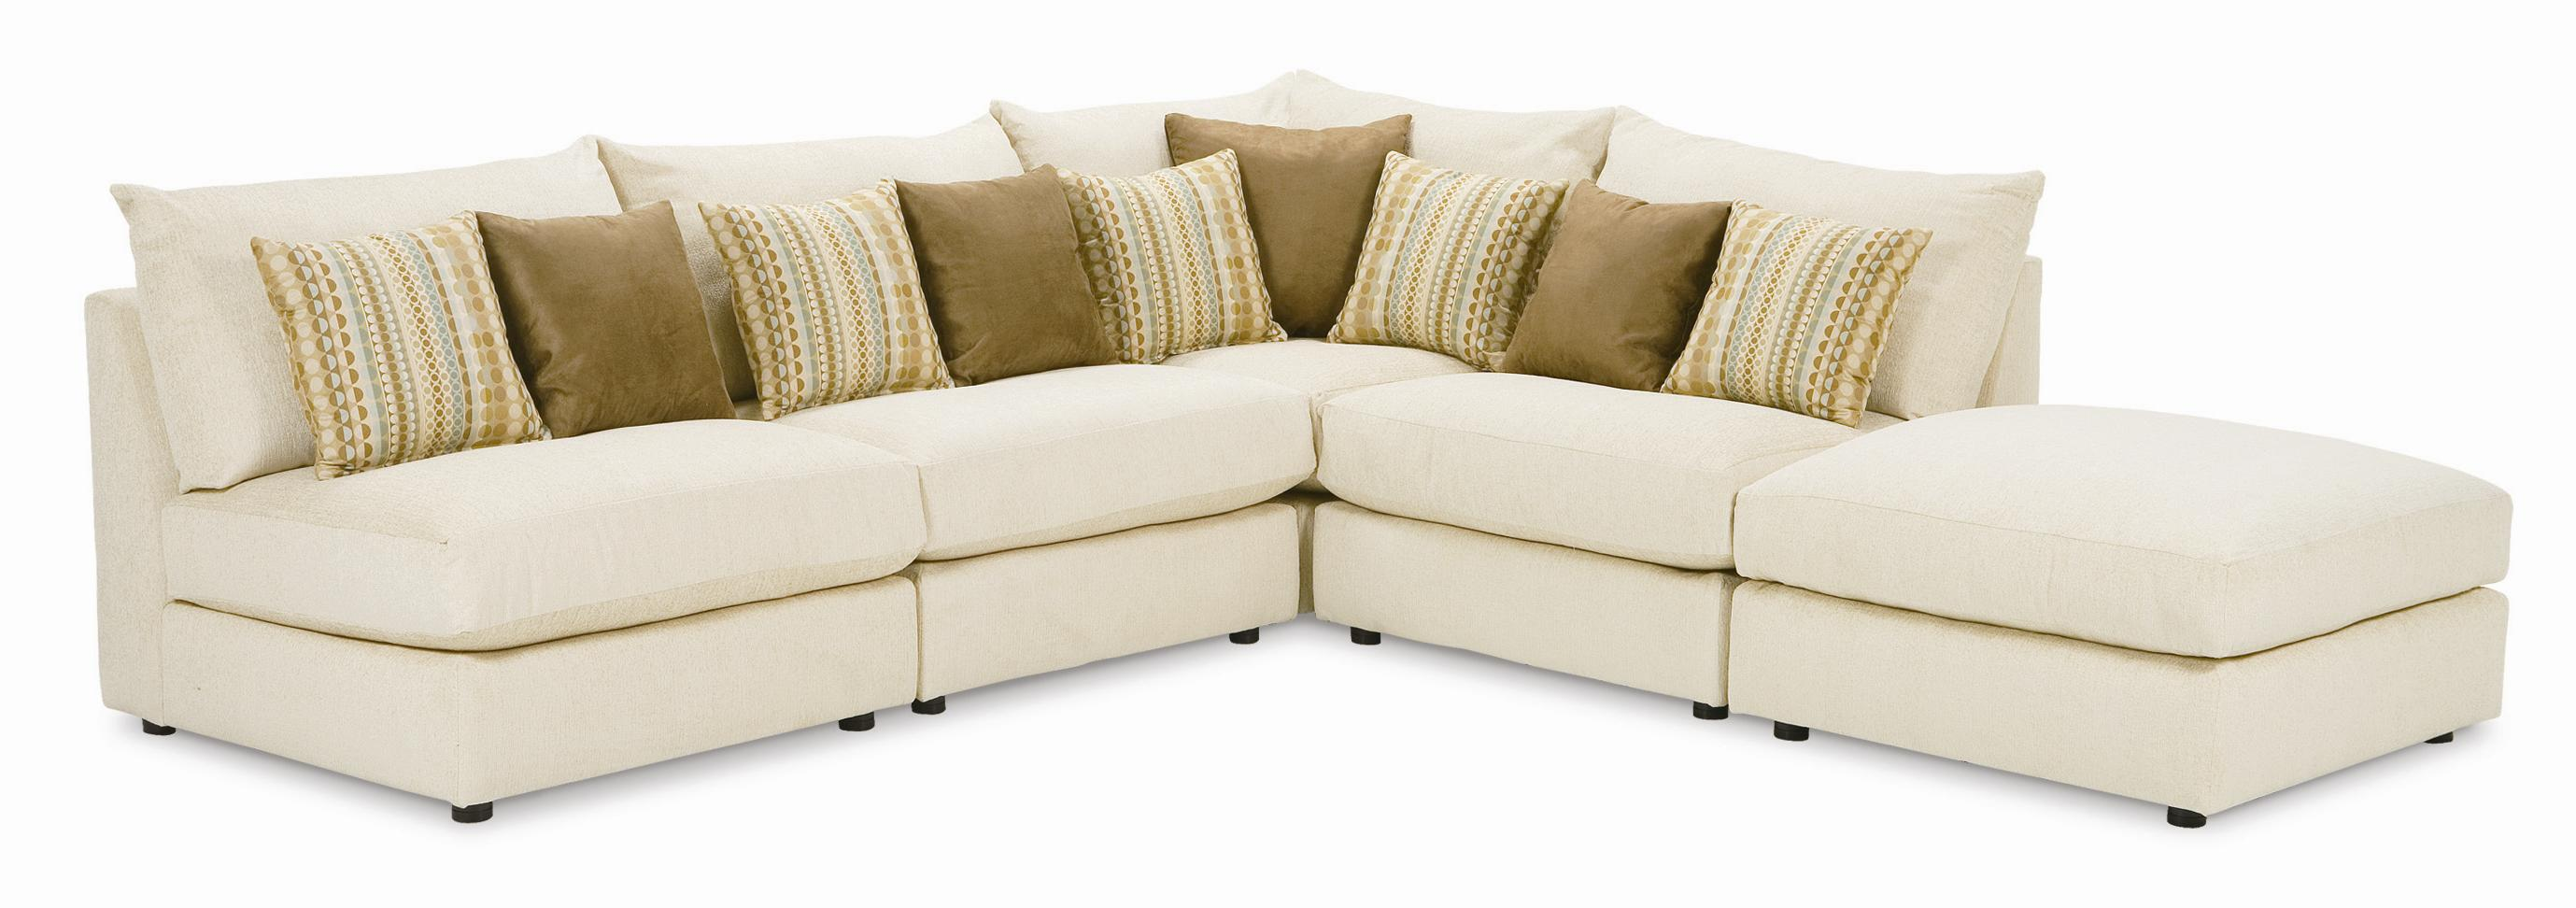 Tempo Five Piece Armless Sectional Sofa by Rowe